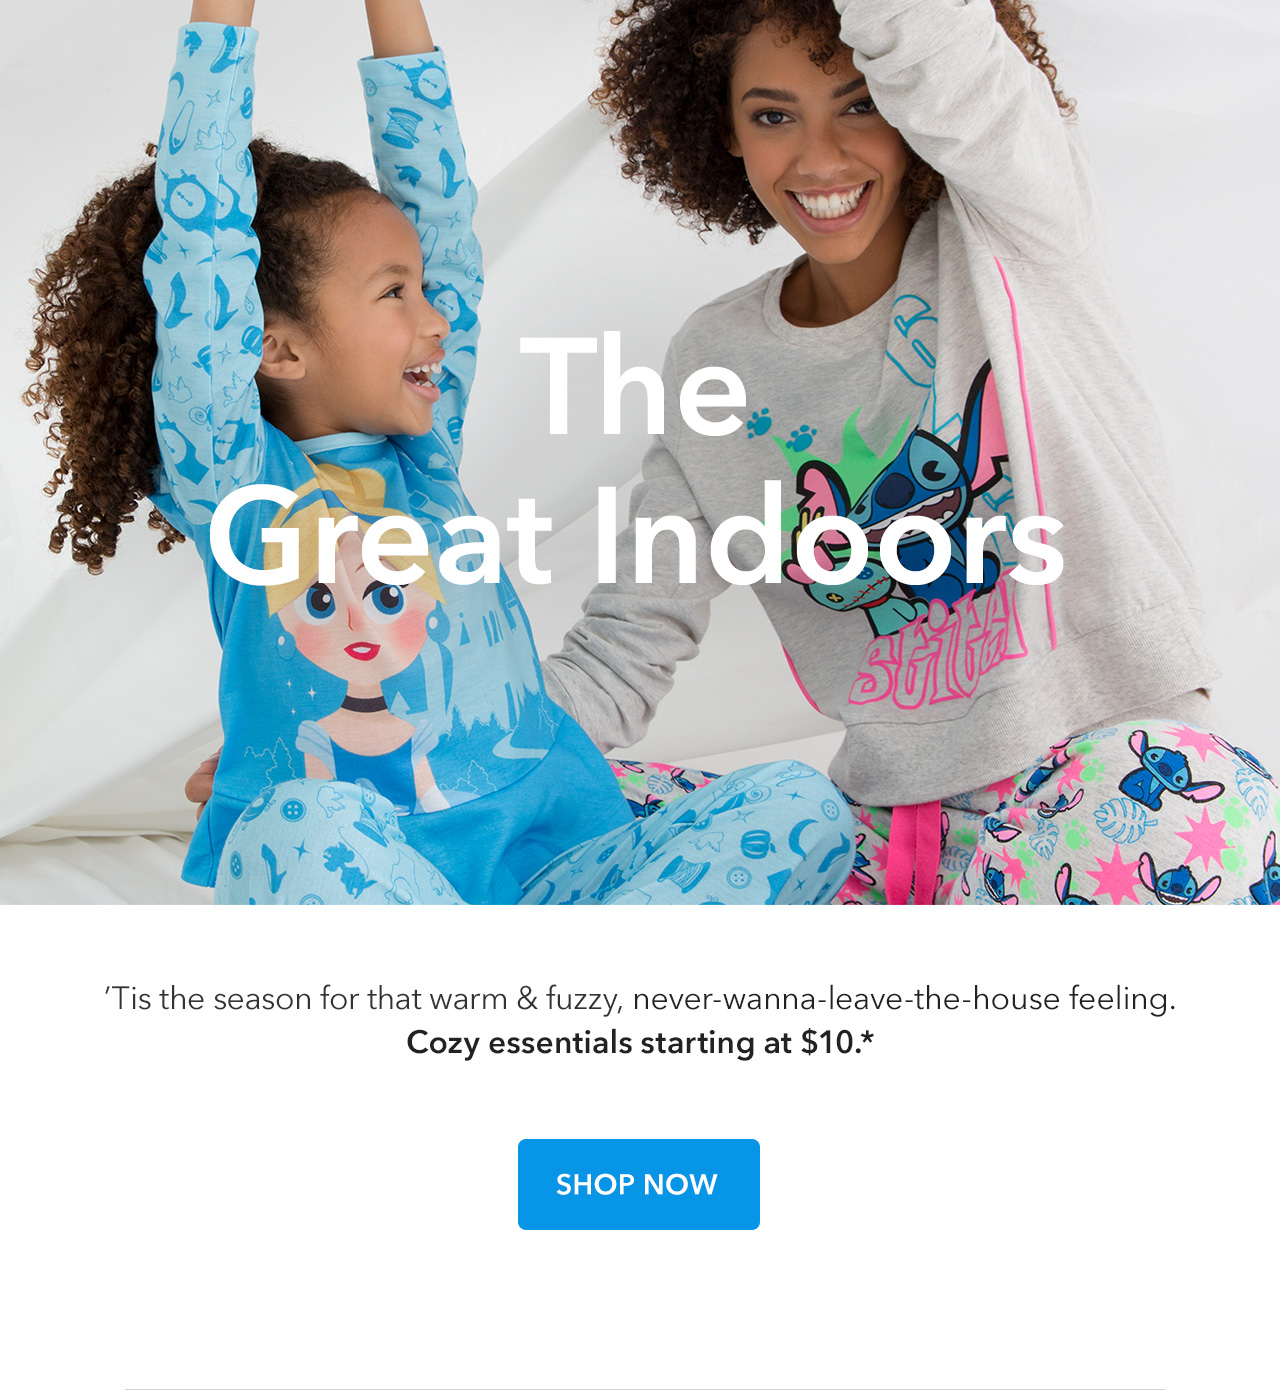 The Great Indoors | 'Tis the season for that warm and fuzzy, never-wanna-leave-the-house feeling.  Cozy essentials starting at $10.  | Shop Now